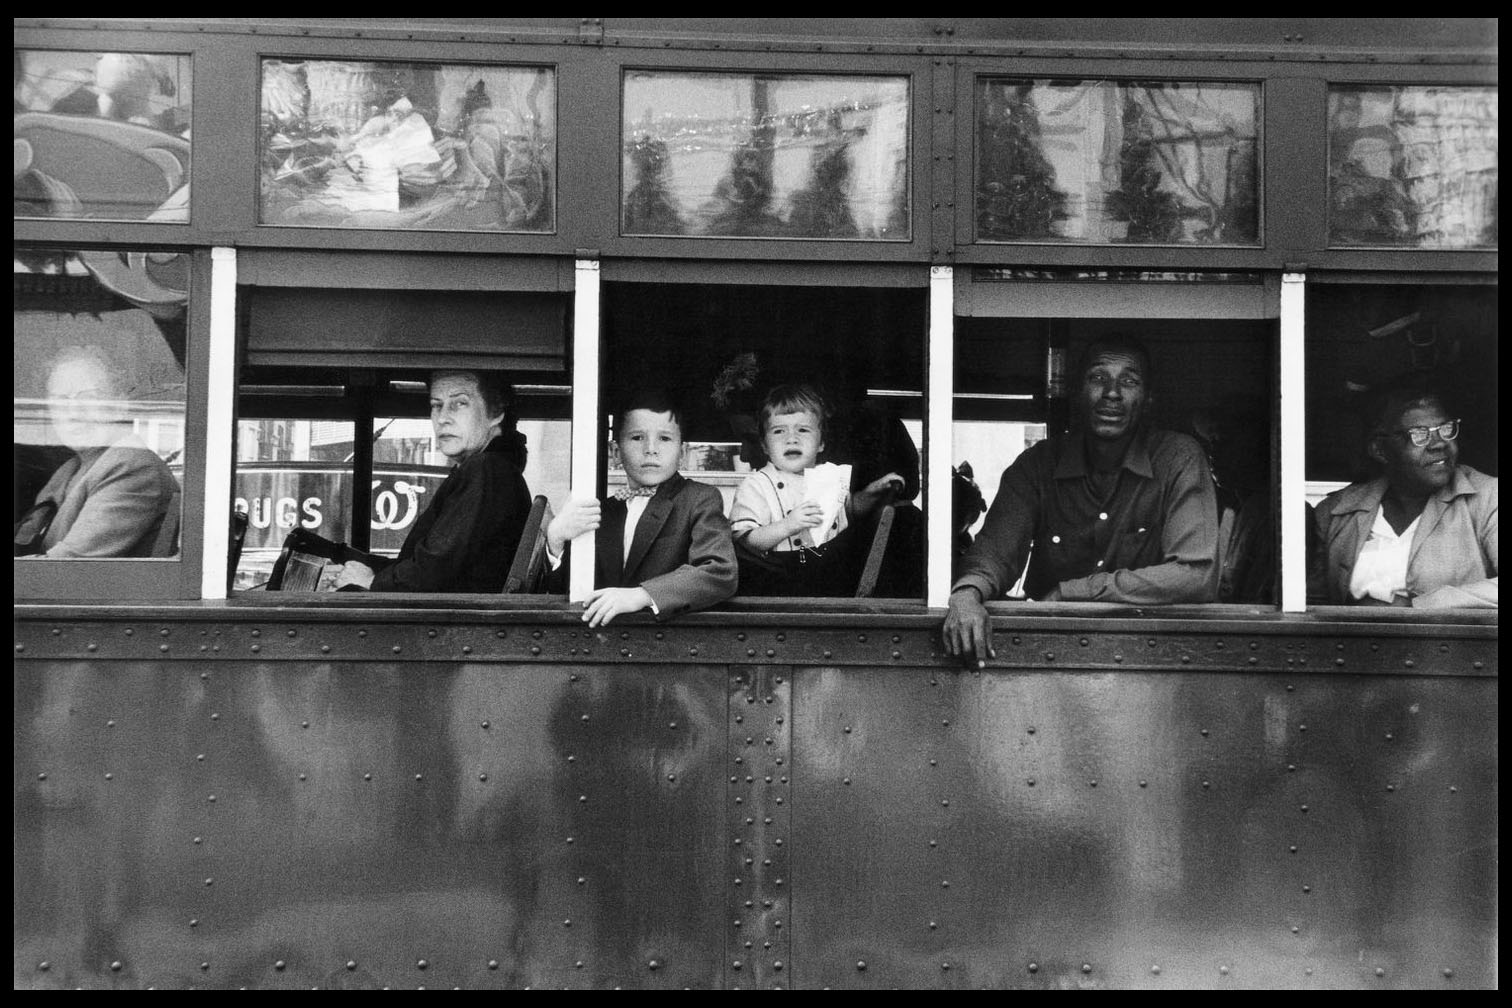 The Americans by Robert Frank copy.jpg